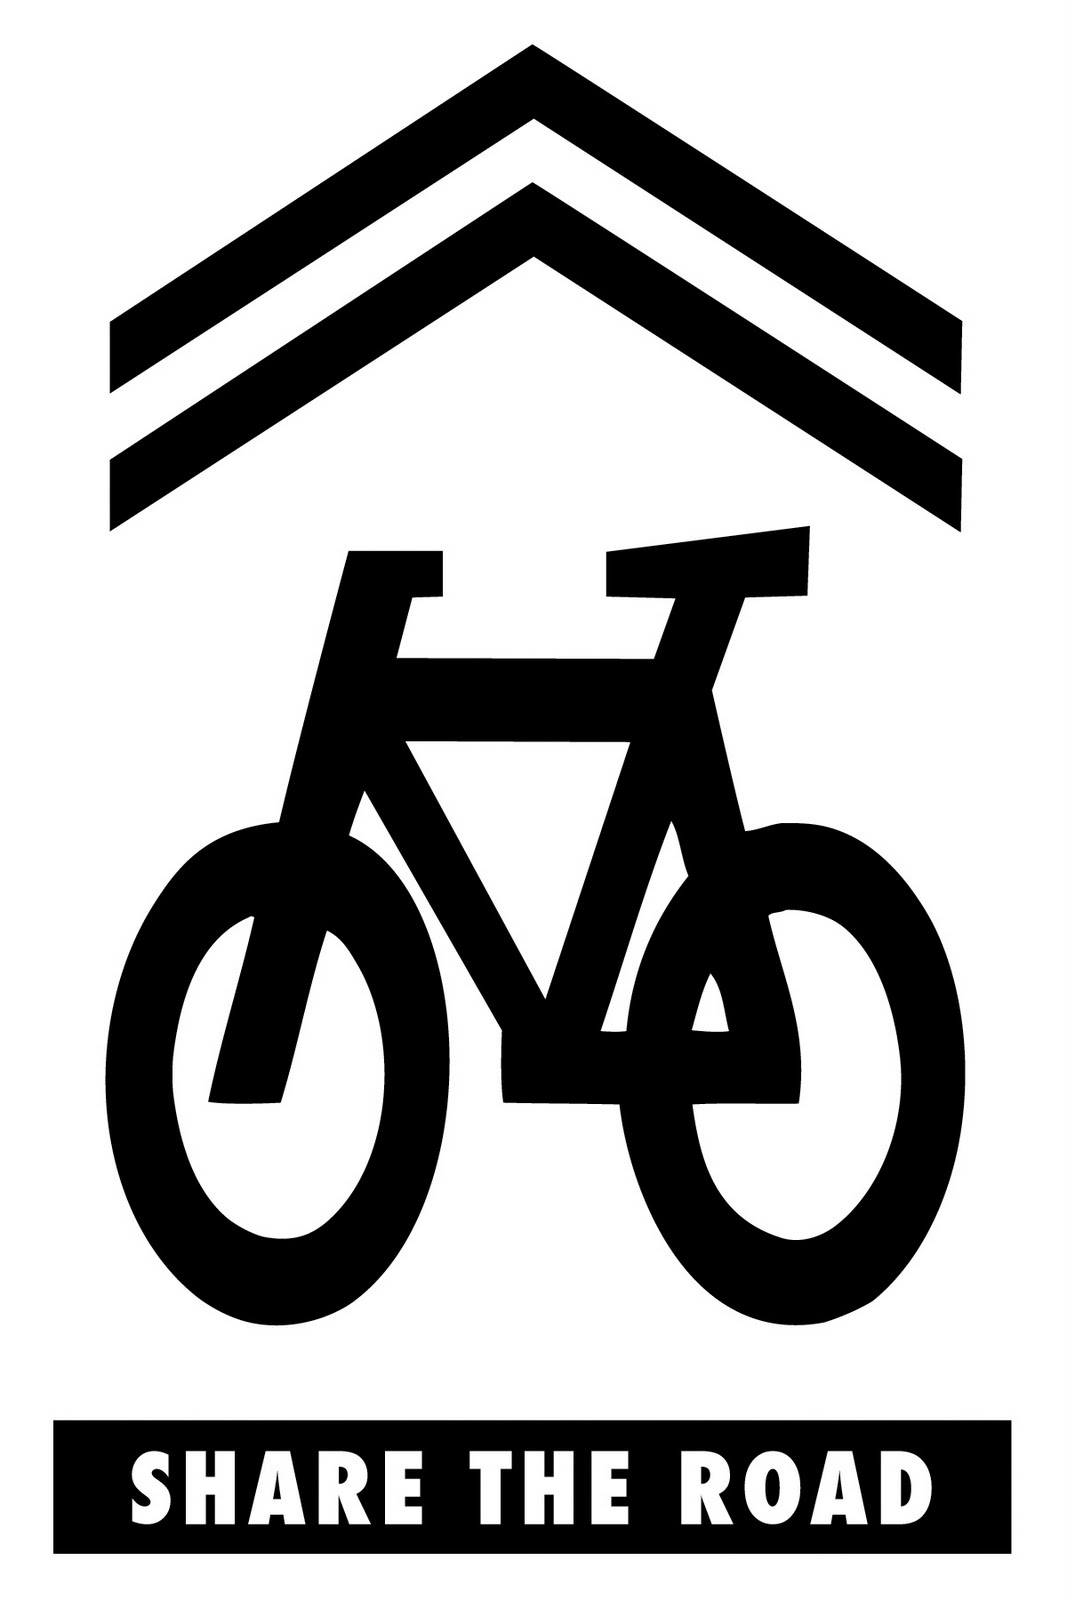 Bike Sharrow Stencils for Contemporary Art Bike